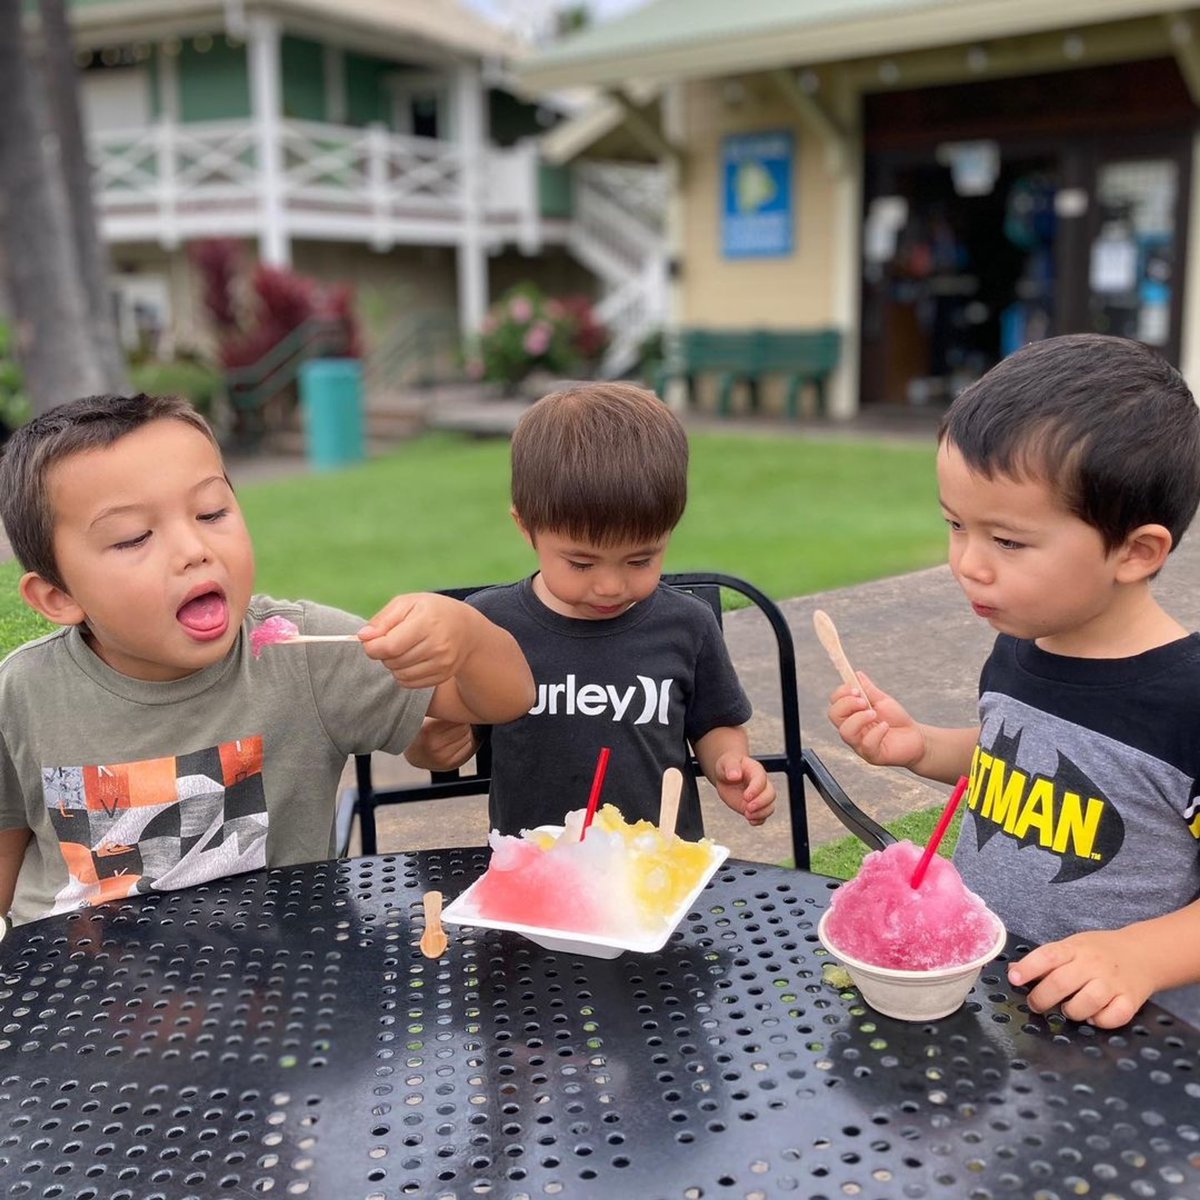 Shave ice is fun for the whole family! Thank you for this great photo @scott_ushiroda #familyfun #shaveice #familytime